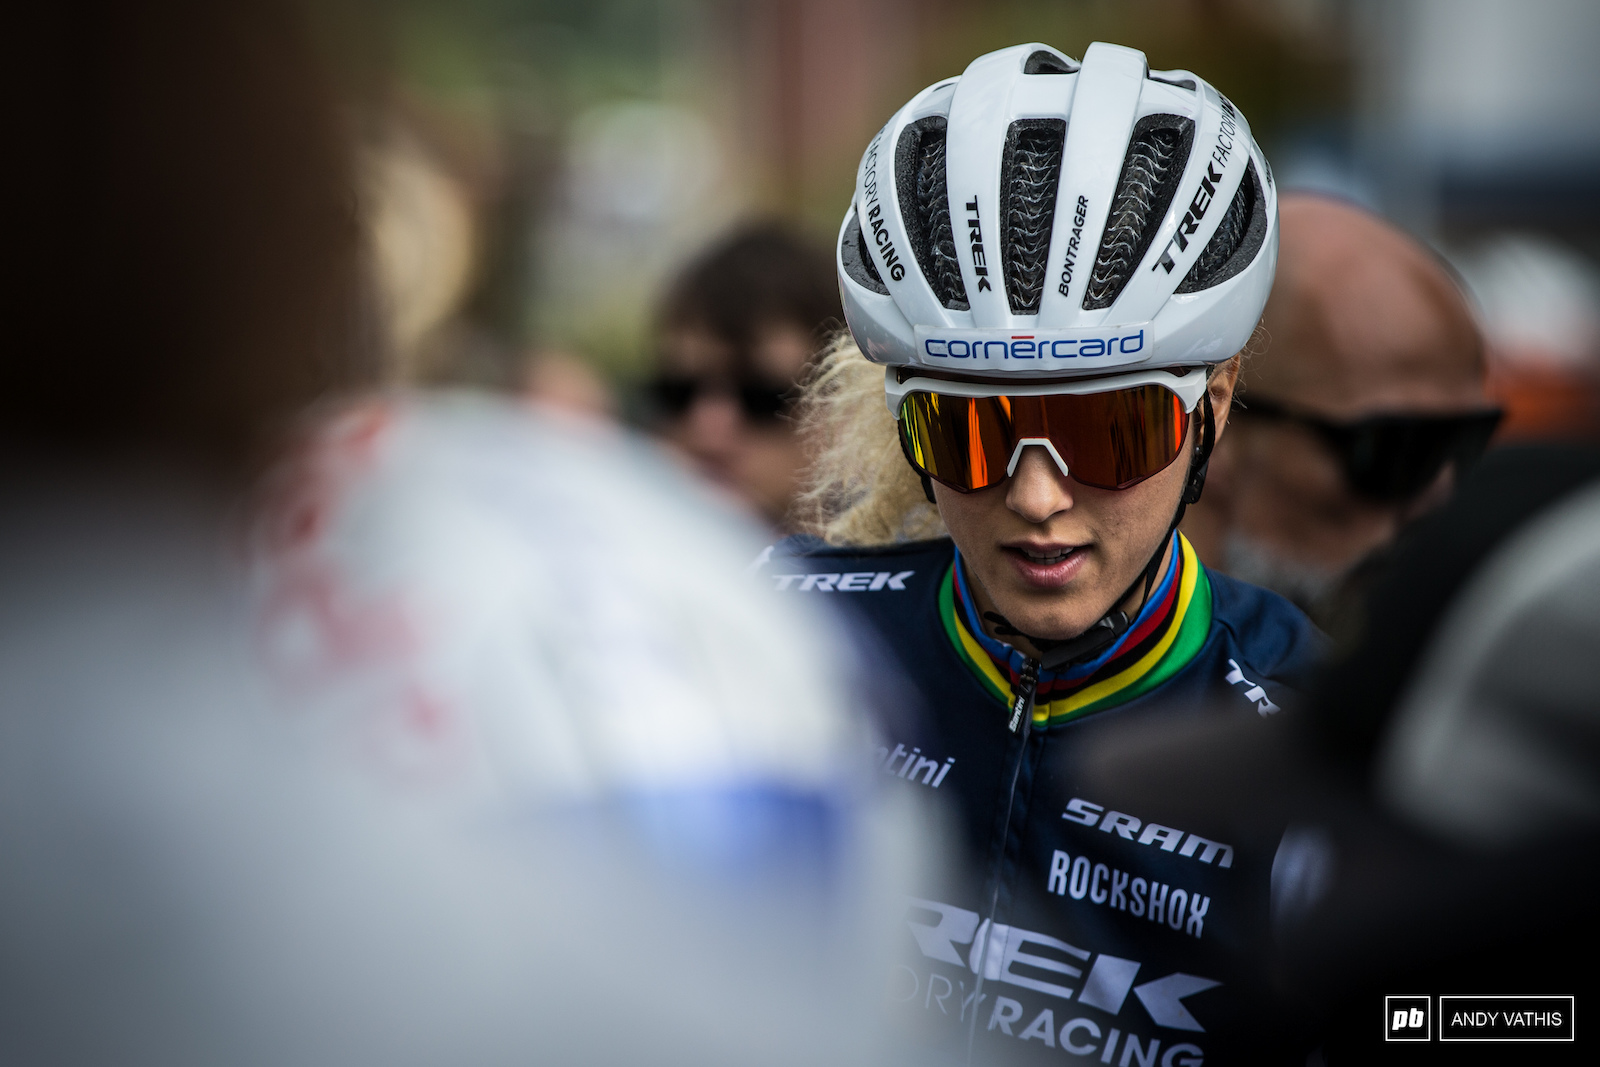 Jolanda Neff in the new kit looking for the repeat performance from last year.